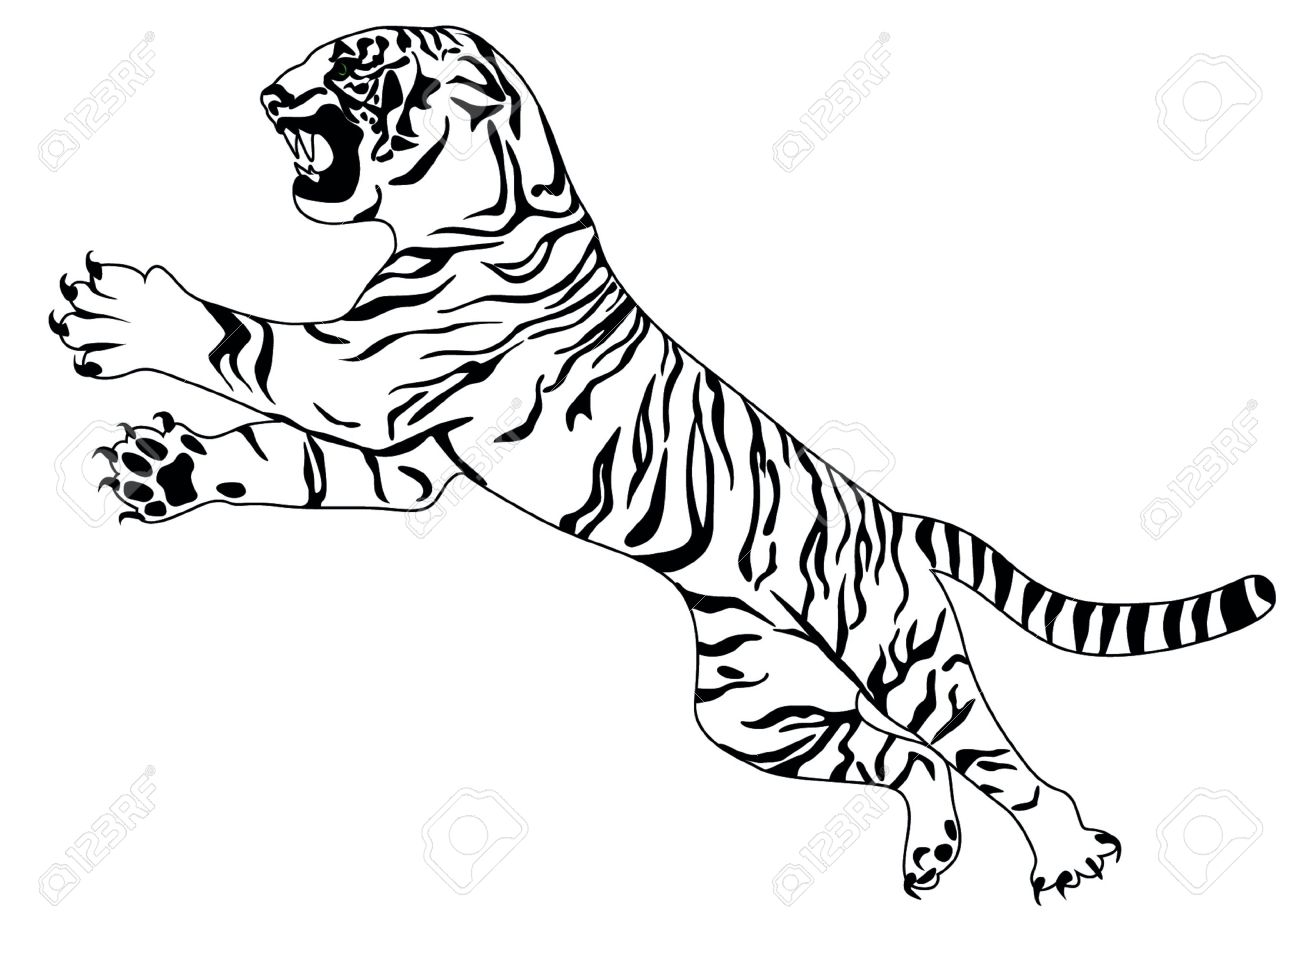 Tiger Black And White Tattoo tiger  tiger  tattoo  bengal